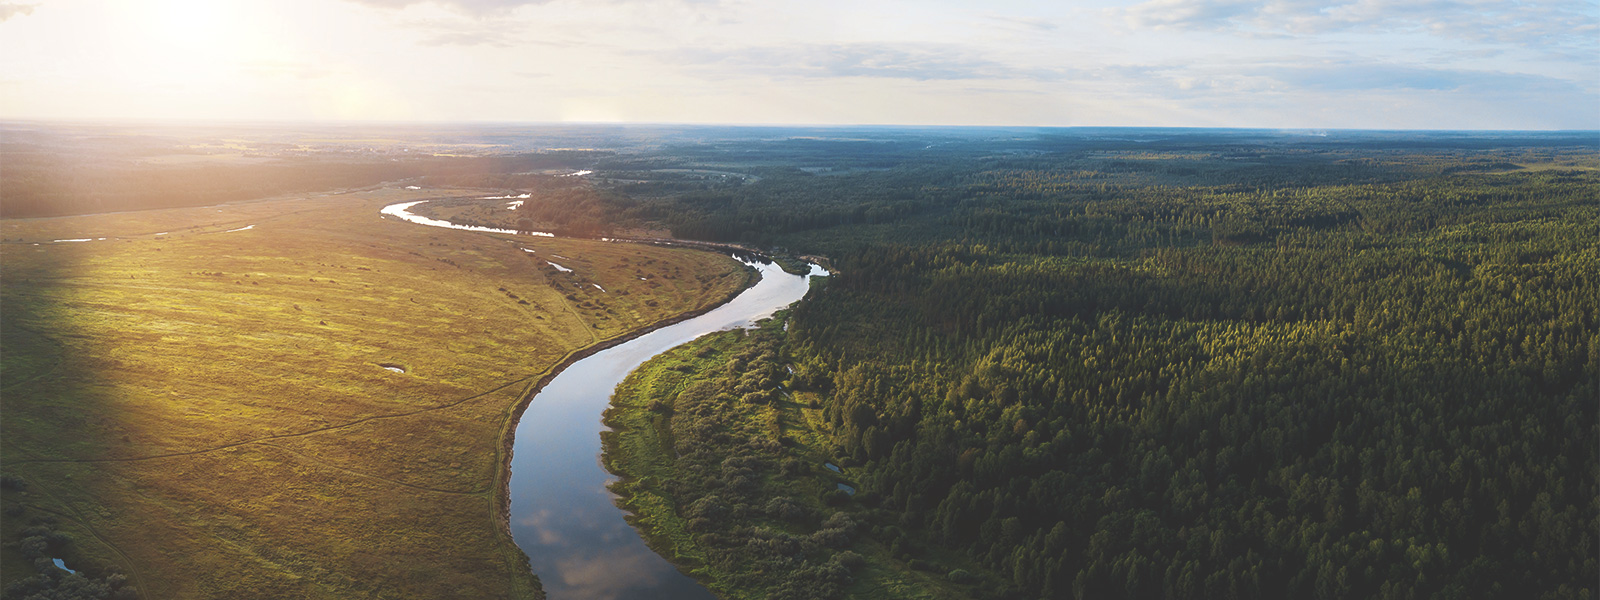 An image showing green land, a river and the horizon.